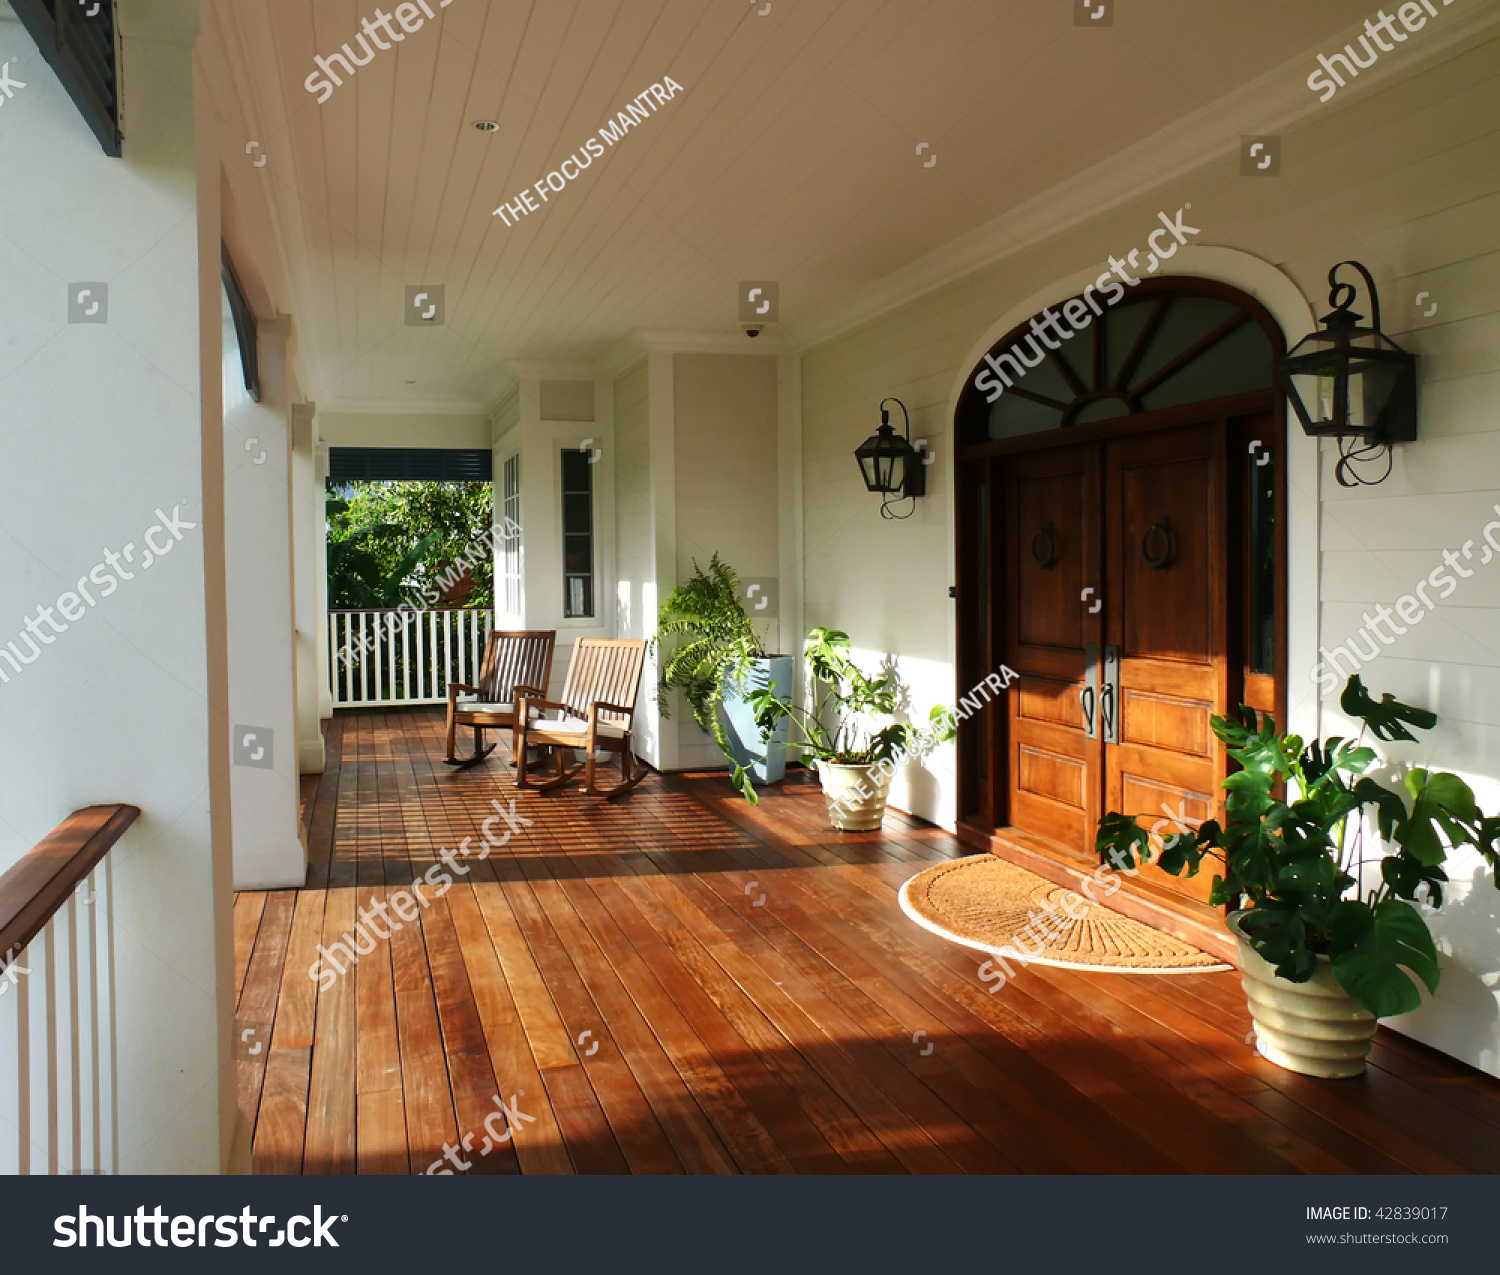 Country style porch and furniture stock photo 42839017 for Country style porch